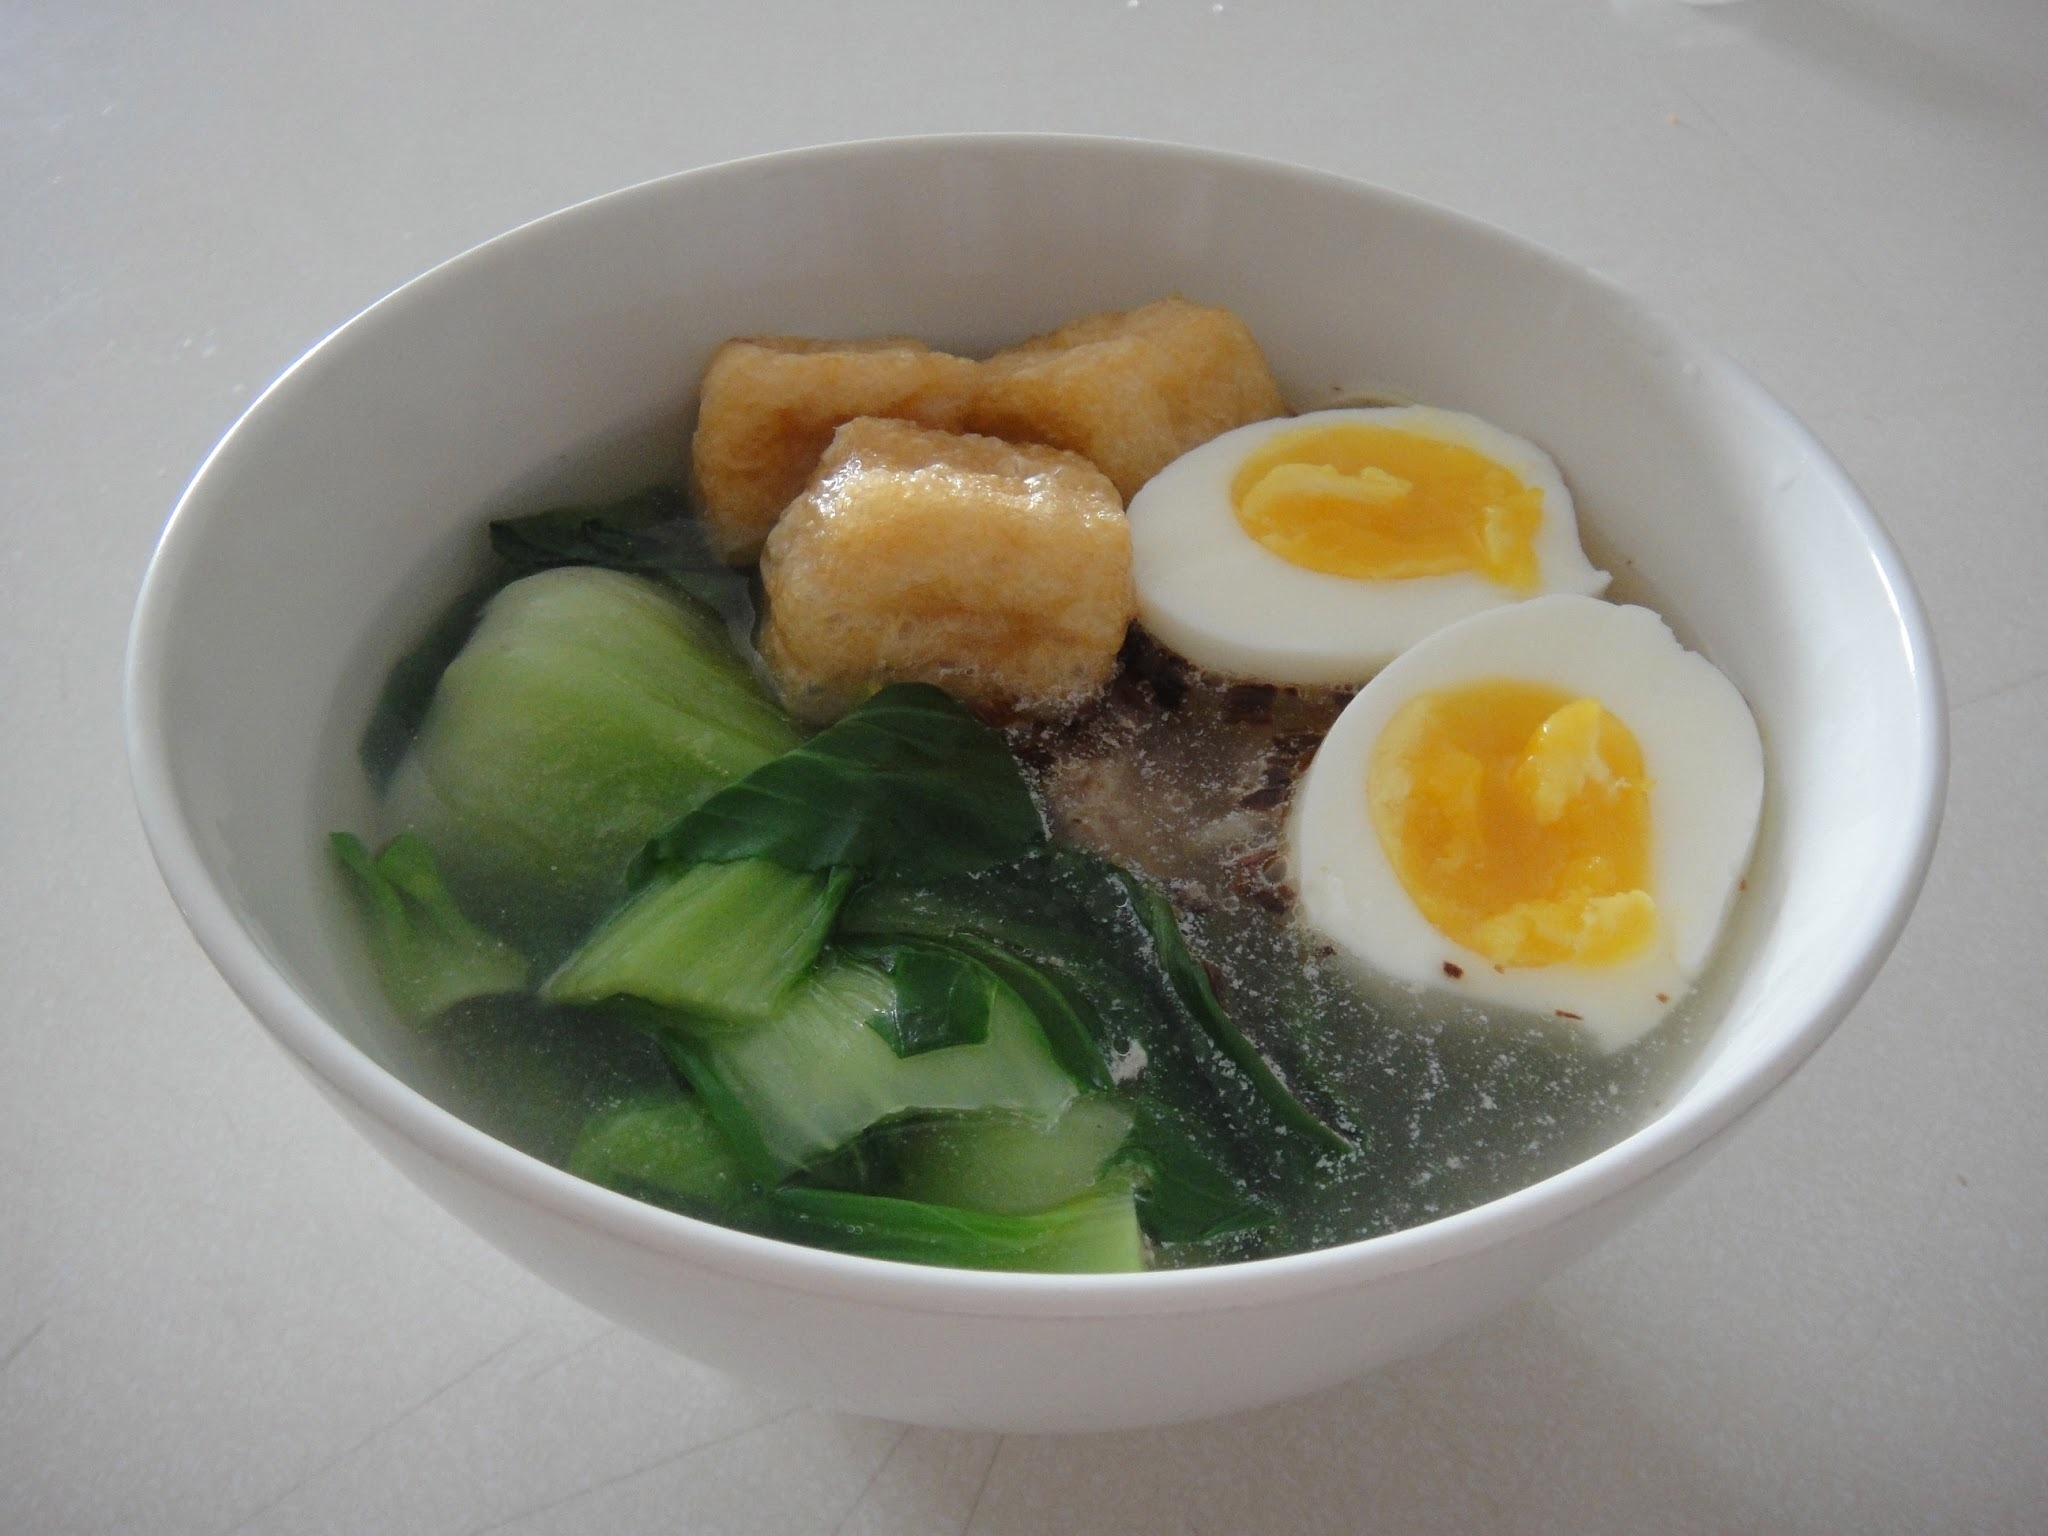 How to make ramen a healthy meal?